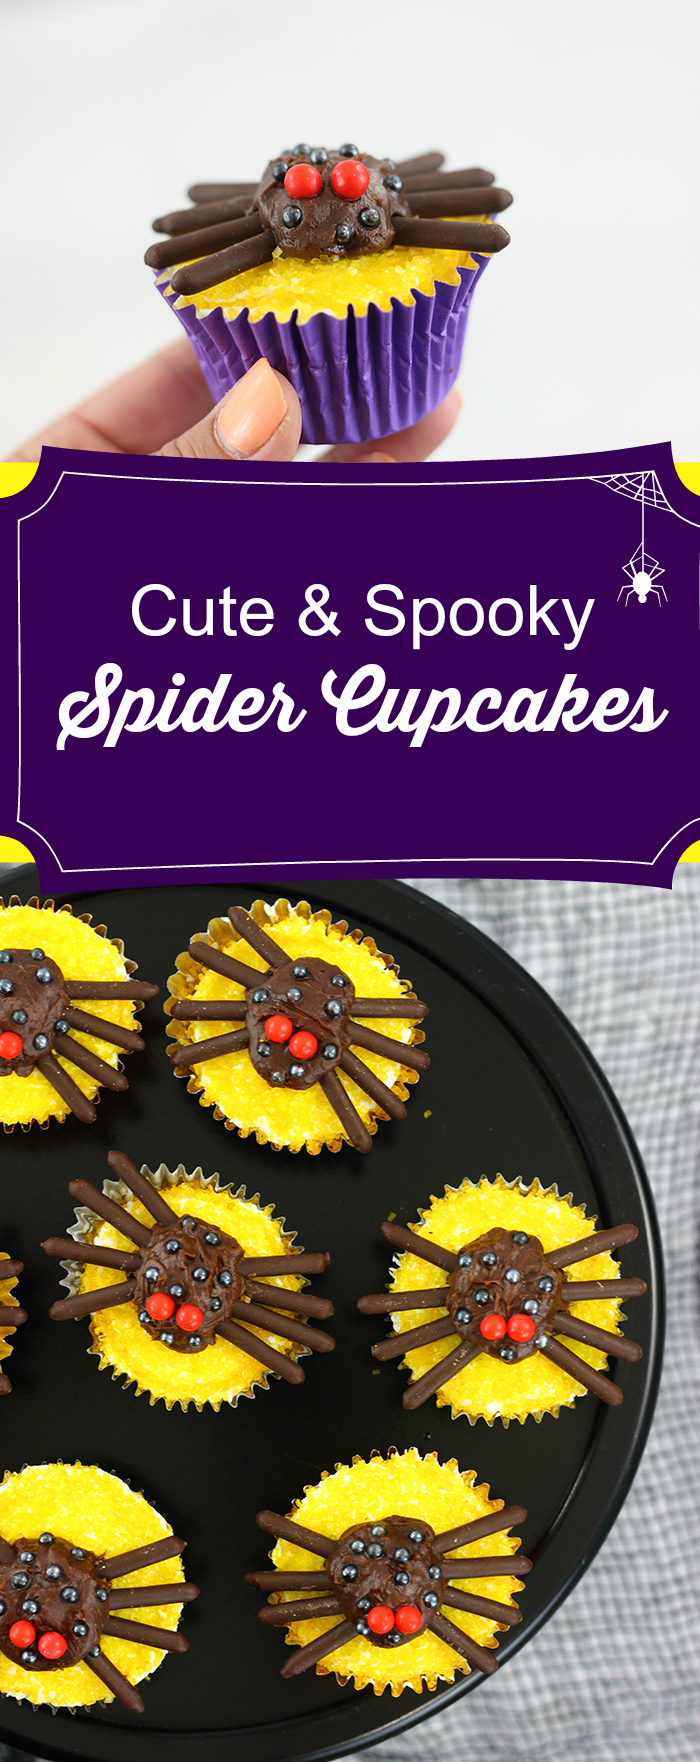 Spider Cupcakes that are cute and spooky. So easy to make and inspired by Halloween cupcakes at Disney World.